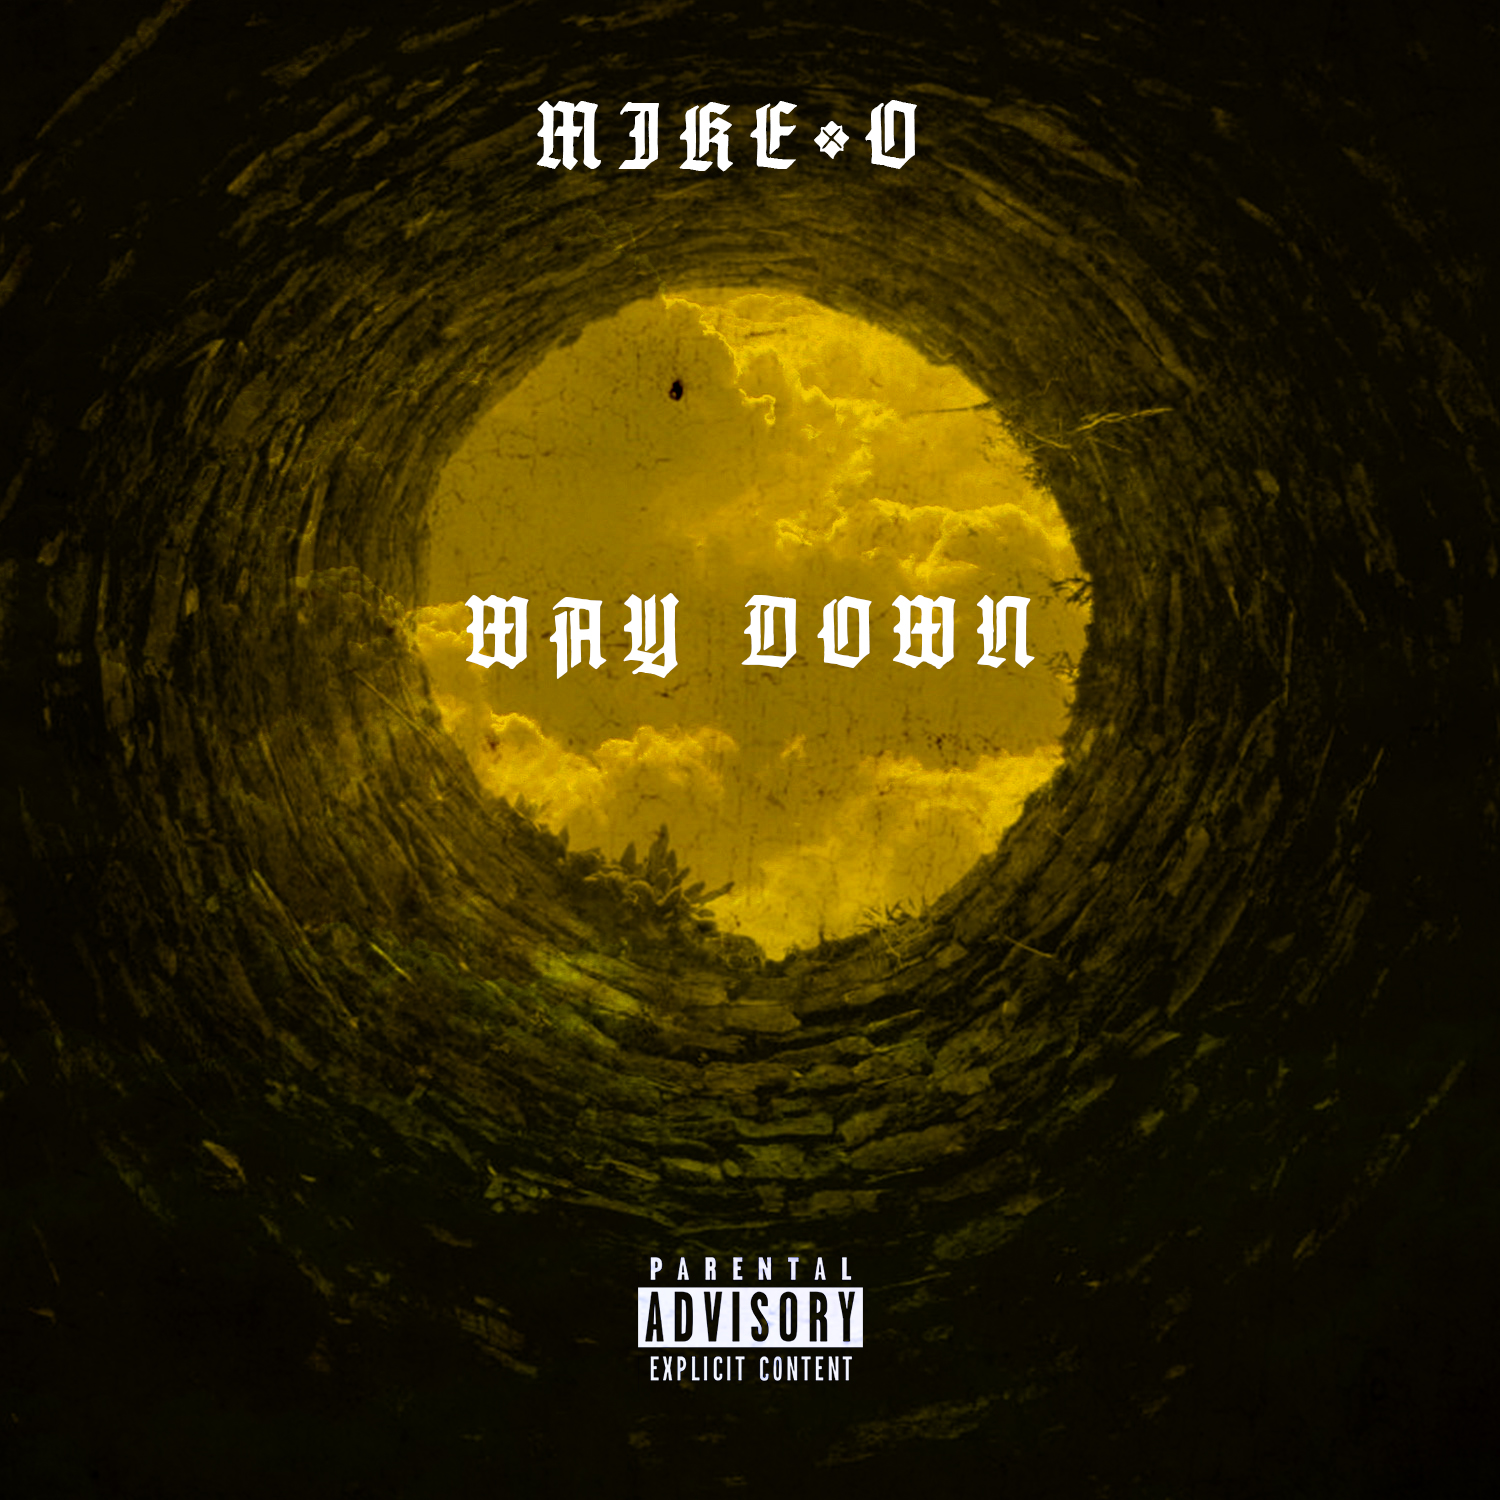 Way Down - by MIKE•O